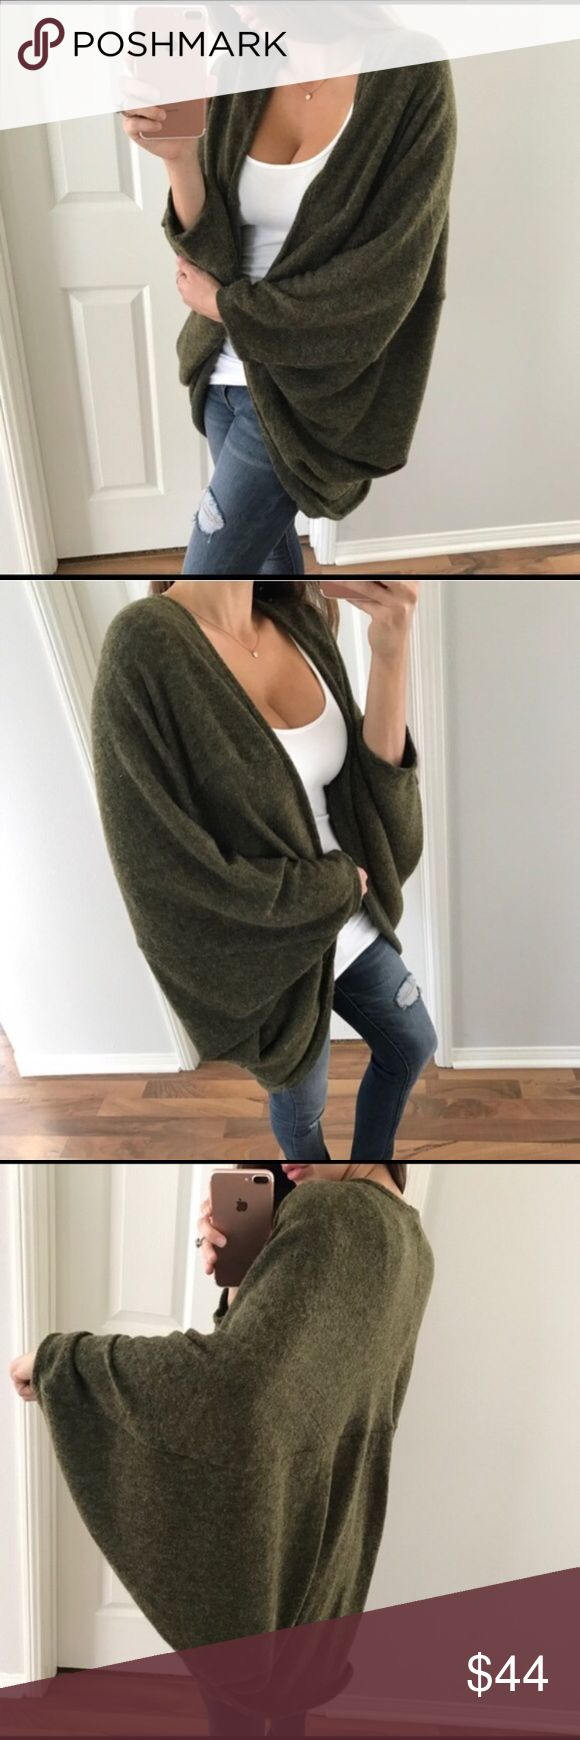 """Olive Cocoon Sweater This is a re-posh.  Beautiful warm sweater but way too big for me.  I ordered a large but this is more suitable for an XL or an XXL.  I'm 5'1"""" with short arms so if you're taller size large would be ok.  Details from the original seller are in the last picture.  From a smoke free home.  When I received this it came packed with fabric softener sheets so the sweater has a floral fragrance. Sweaters Cardigans"""